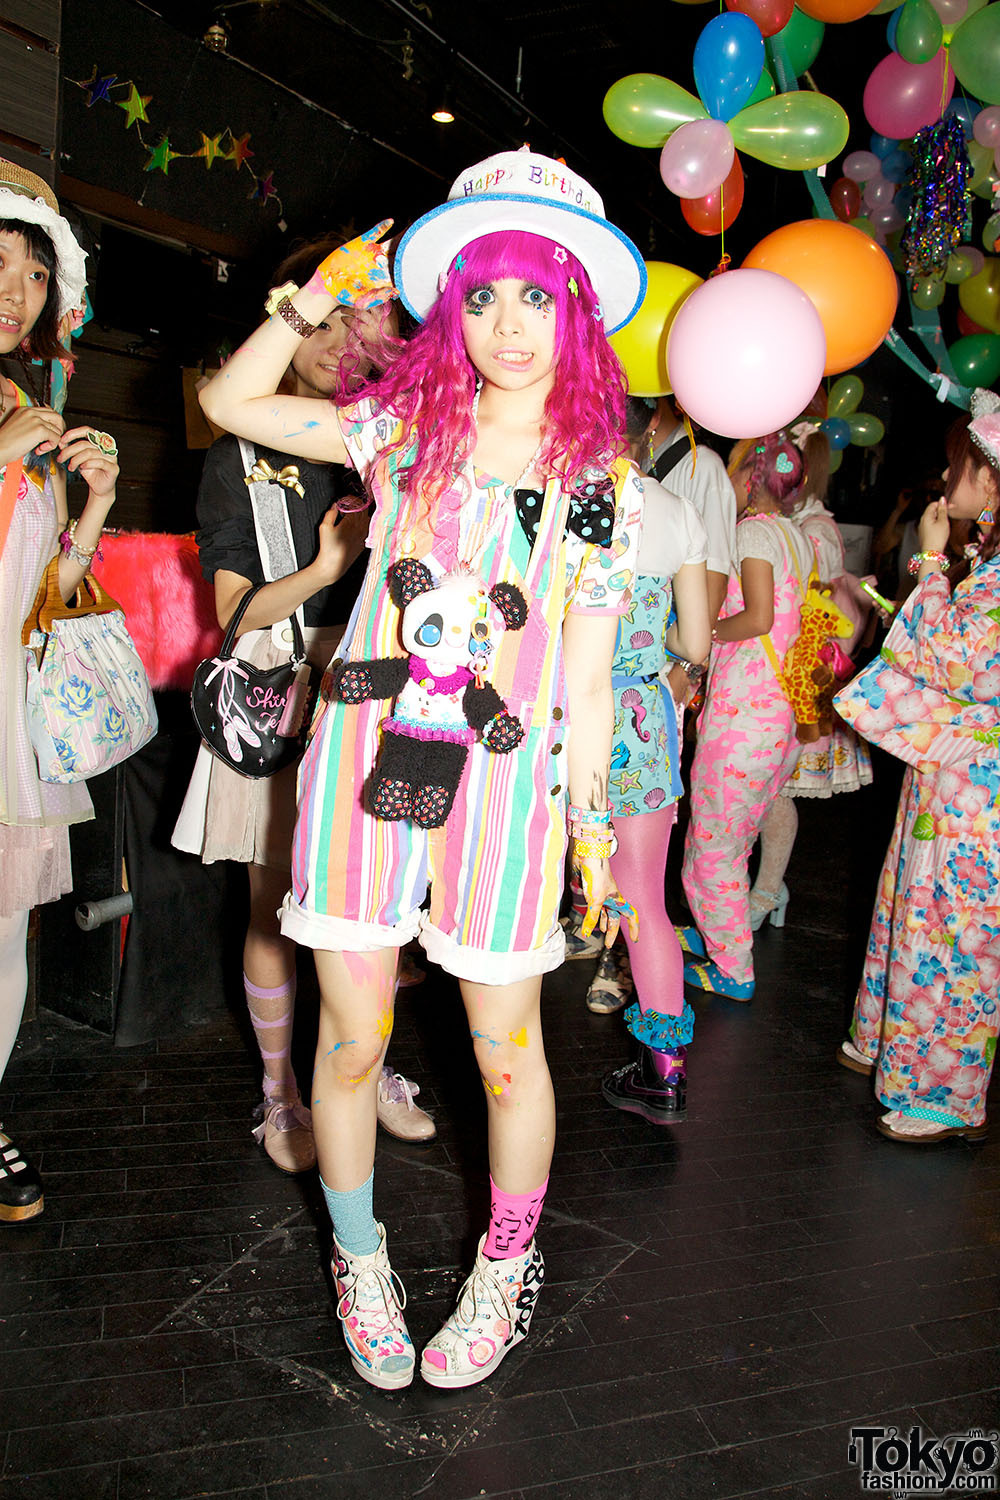 Kurebayashi being too cute. Just posted 50+ colorful summer Harajuku fashion snaps from Pop N Cute #3 with Kurebayashi, Kumamiki, Junnyan, Choco, Itaru Missile, Ribbon & much more awesomeness!!!